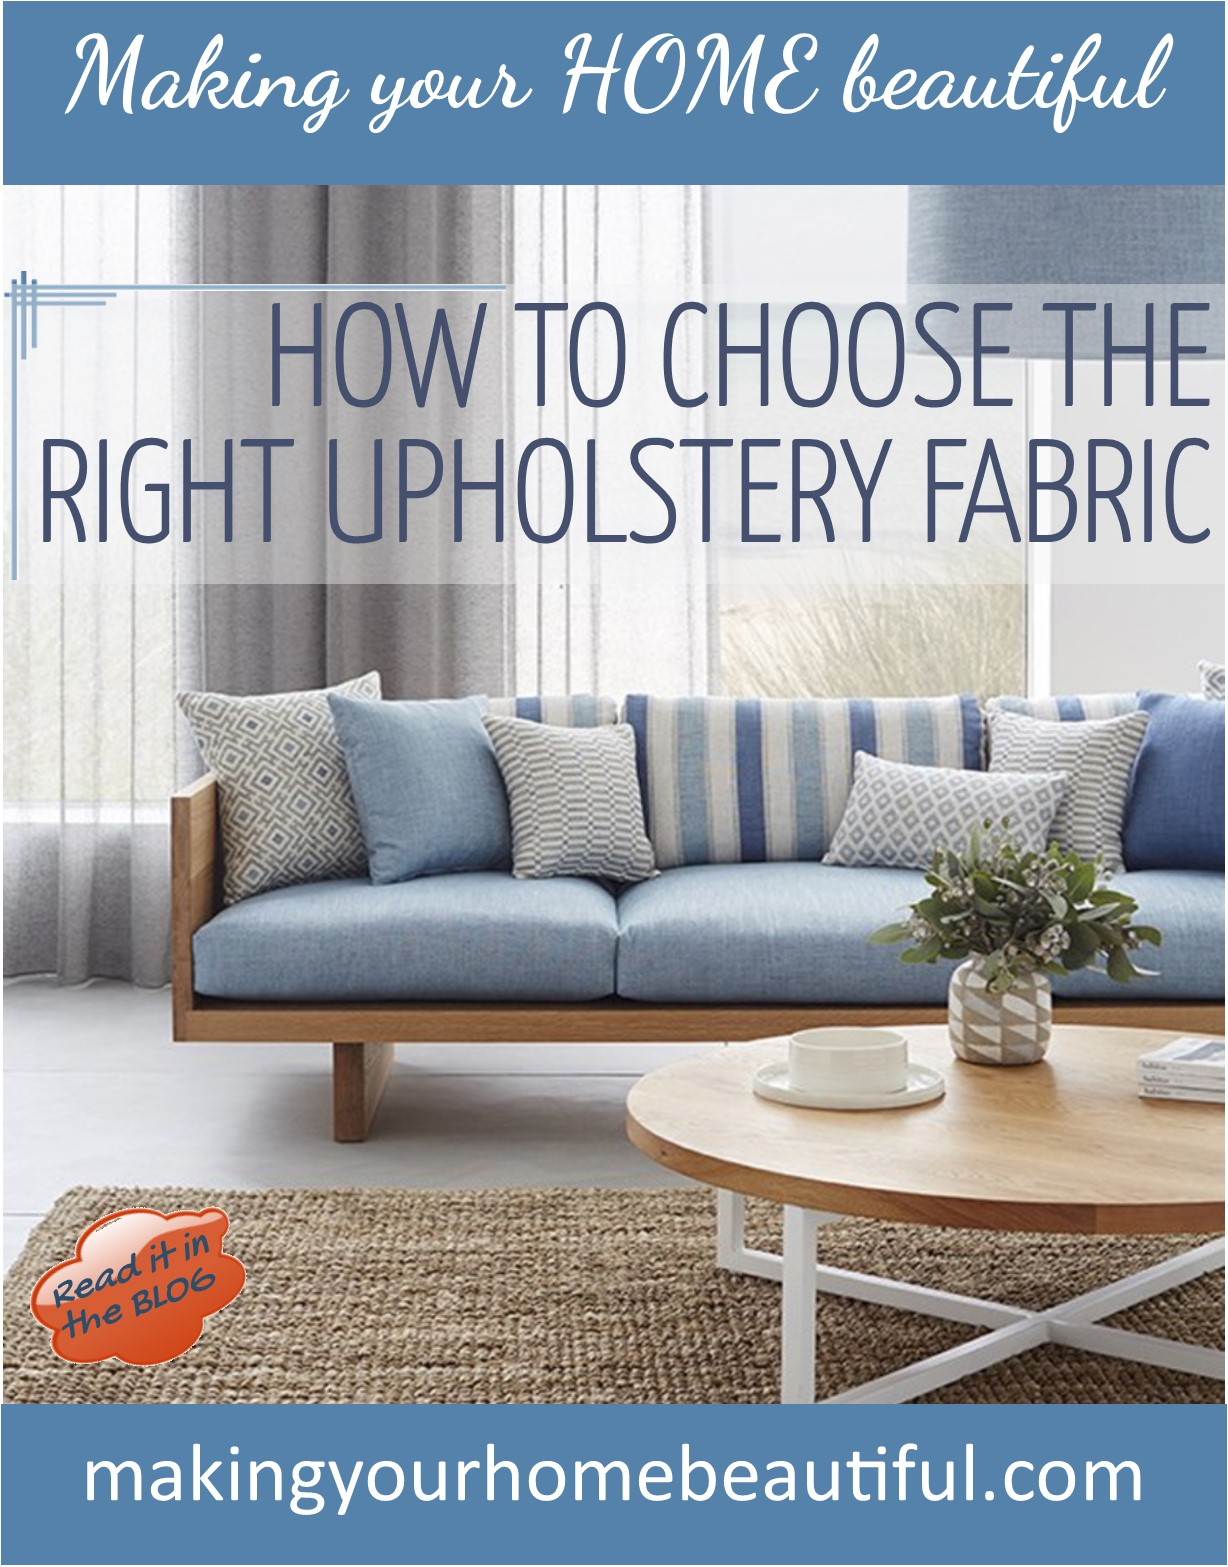 How to find the right upholstery fabric